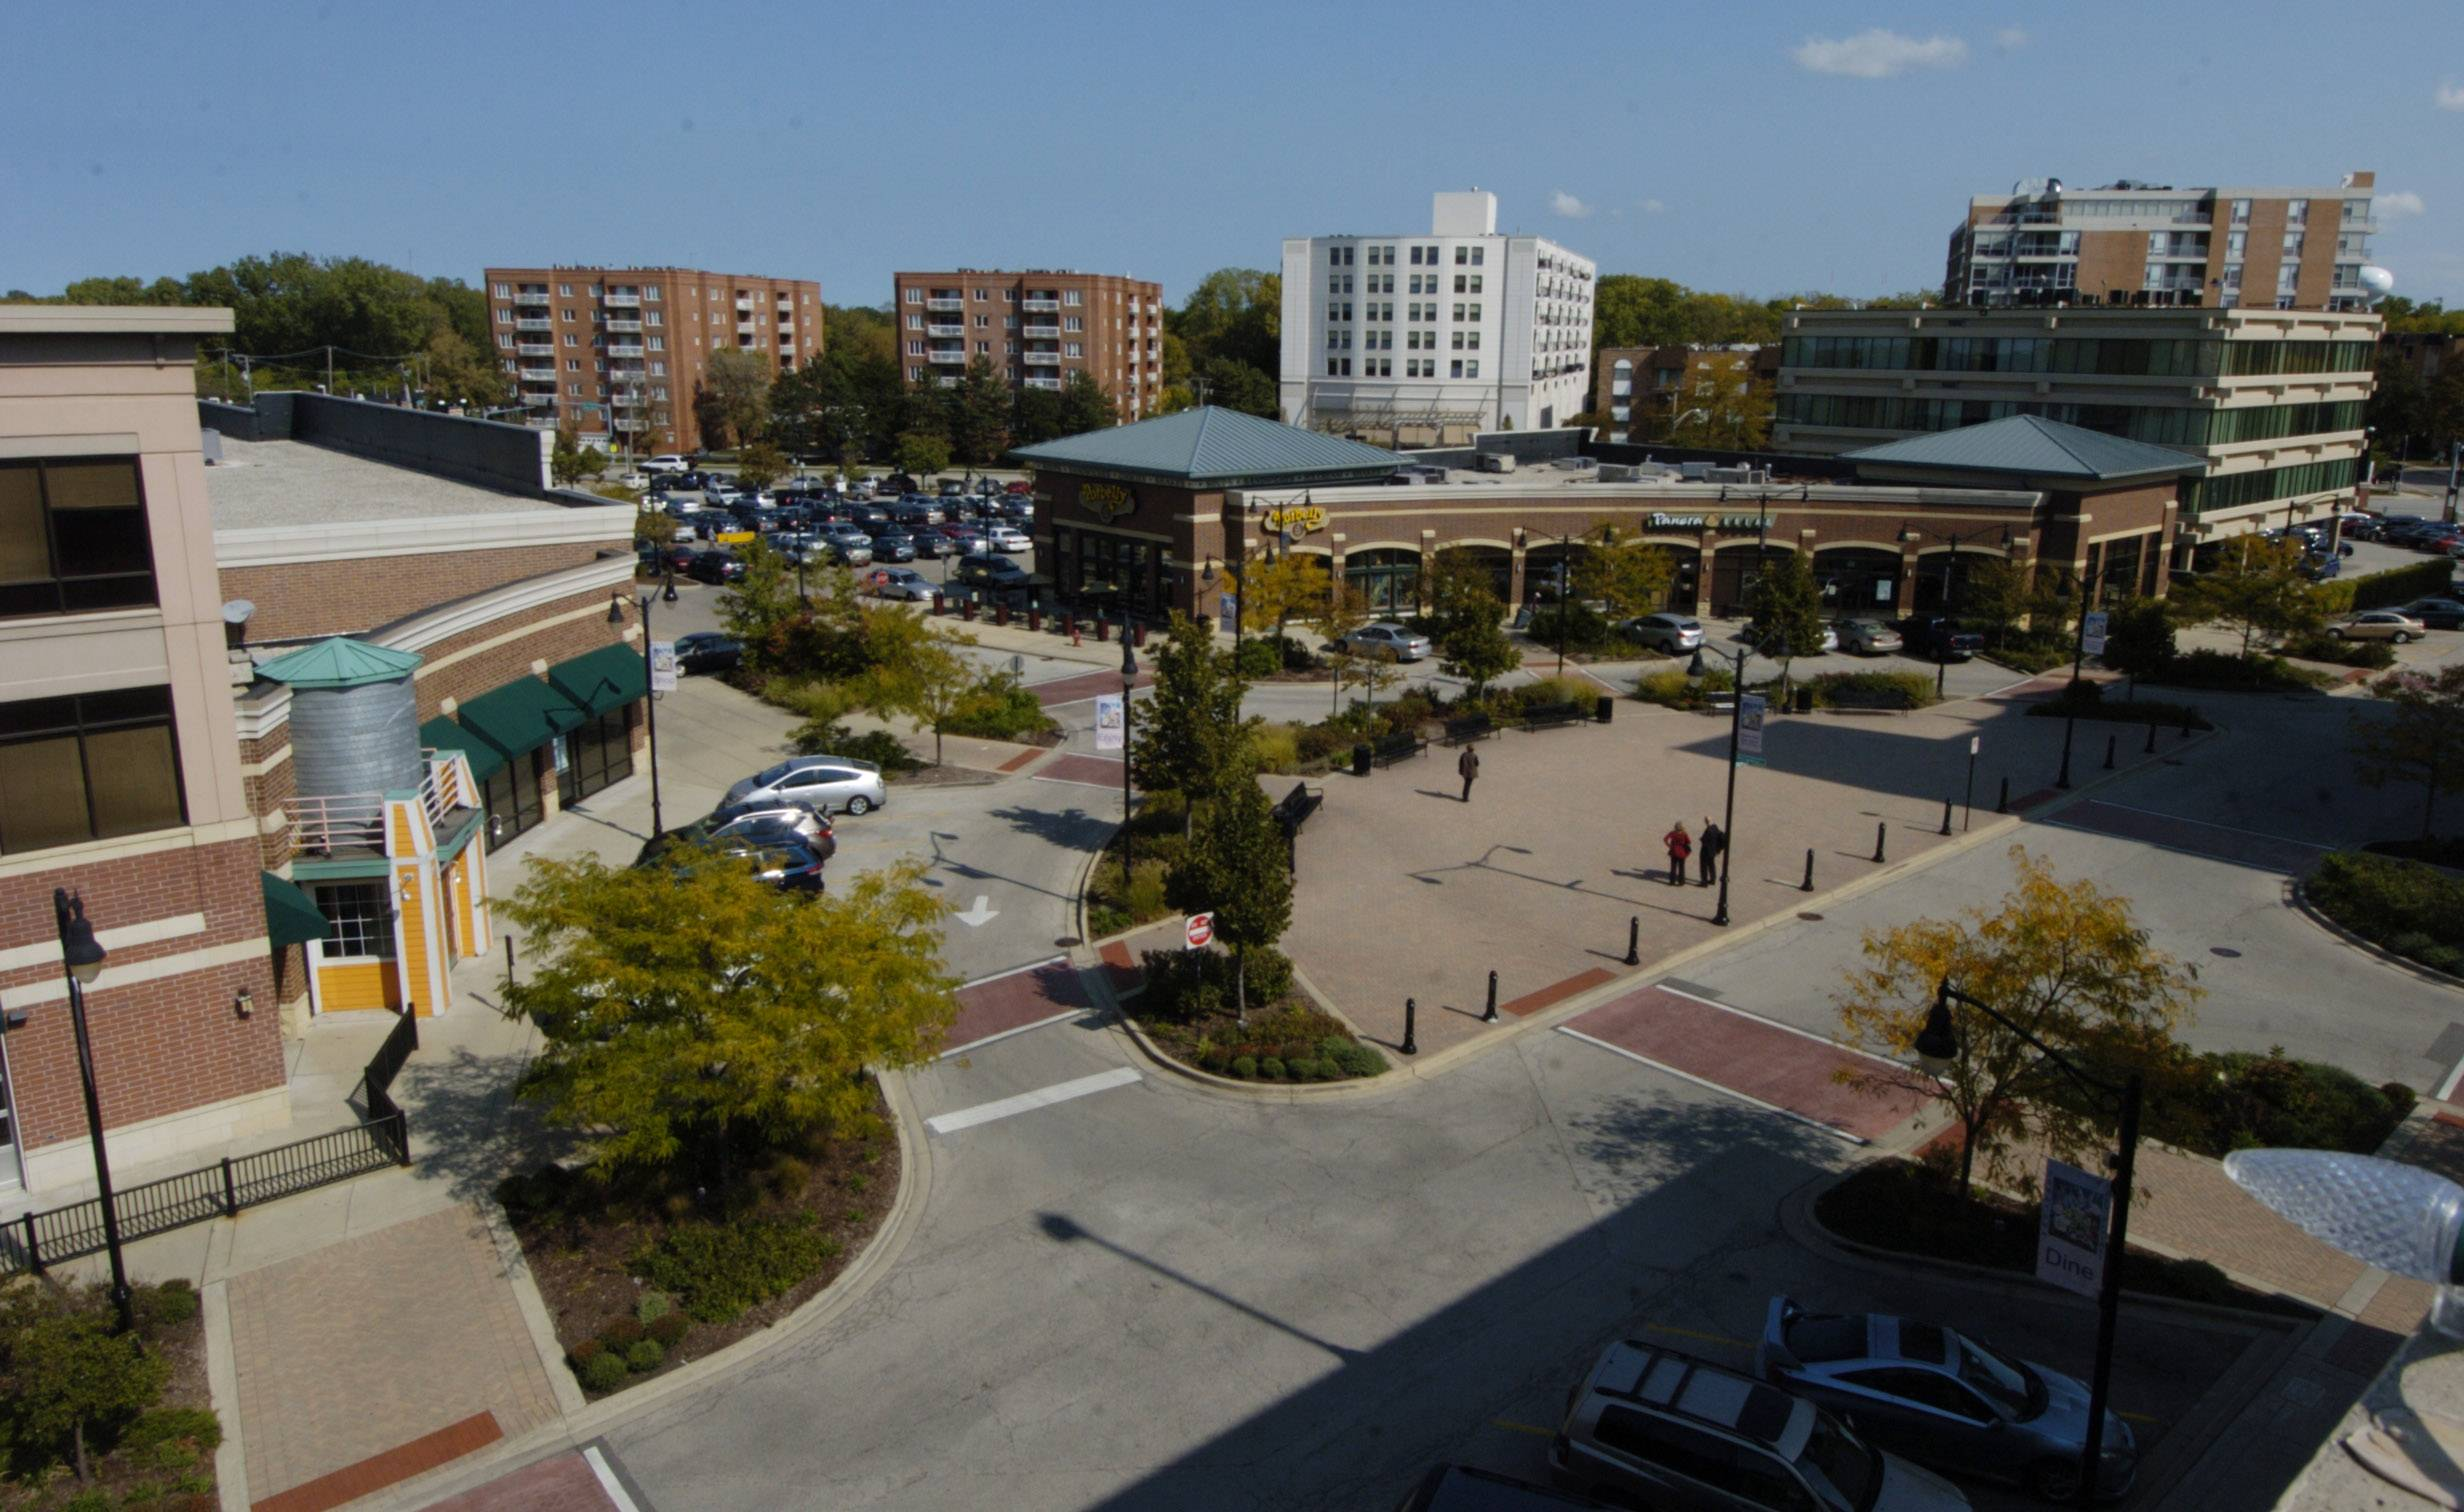 What do you want to see in Des Plaines' Metropolitan Square?